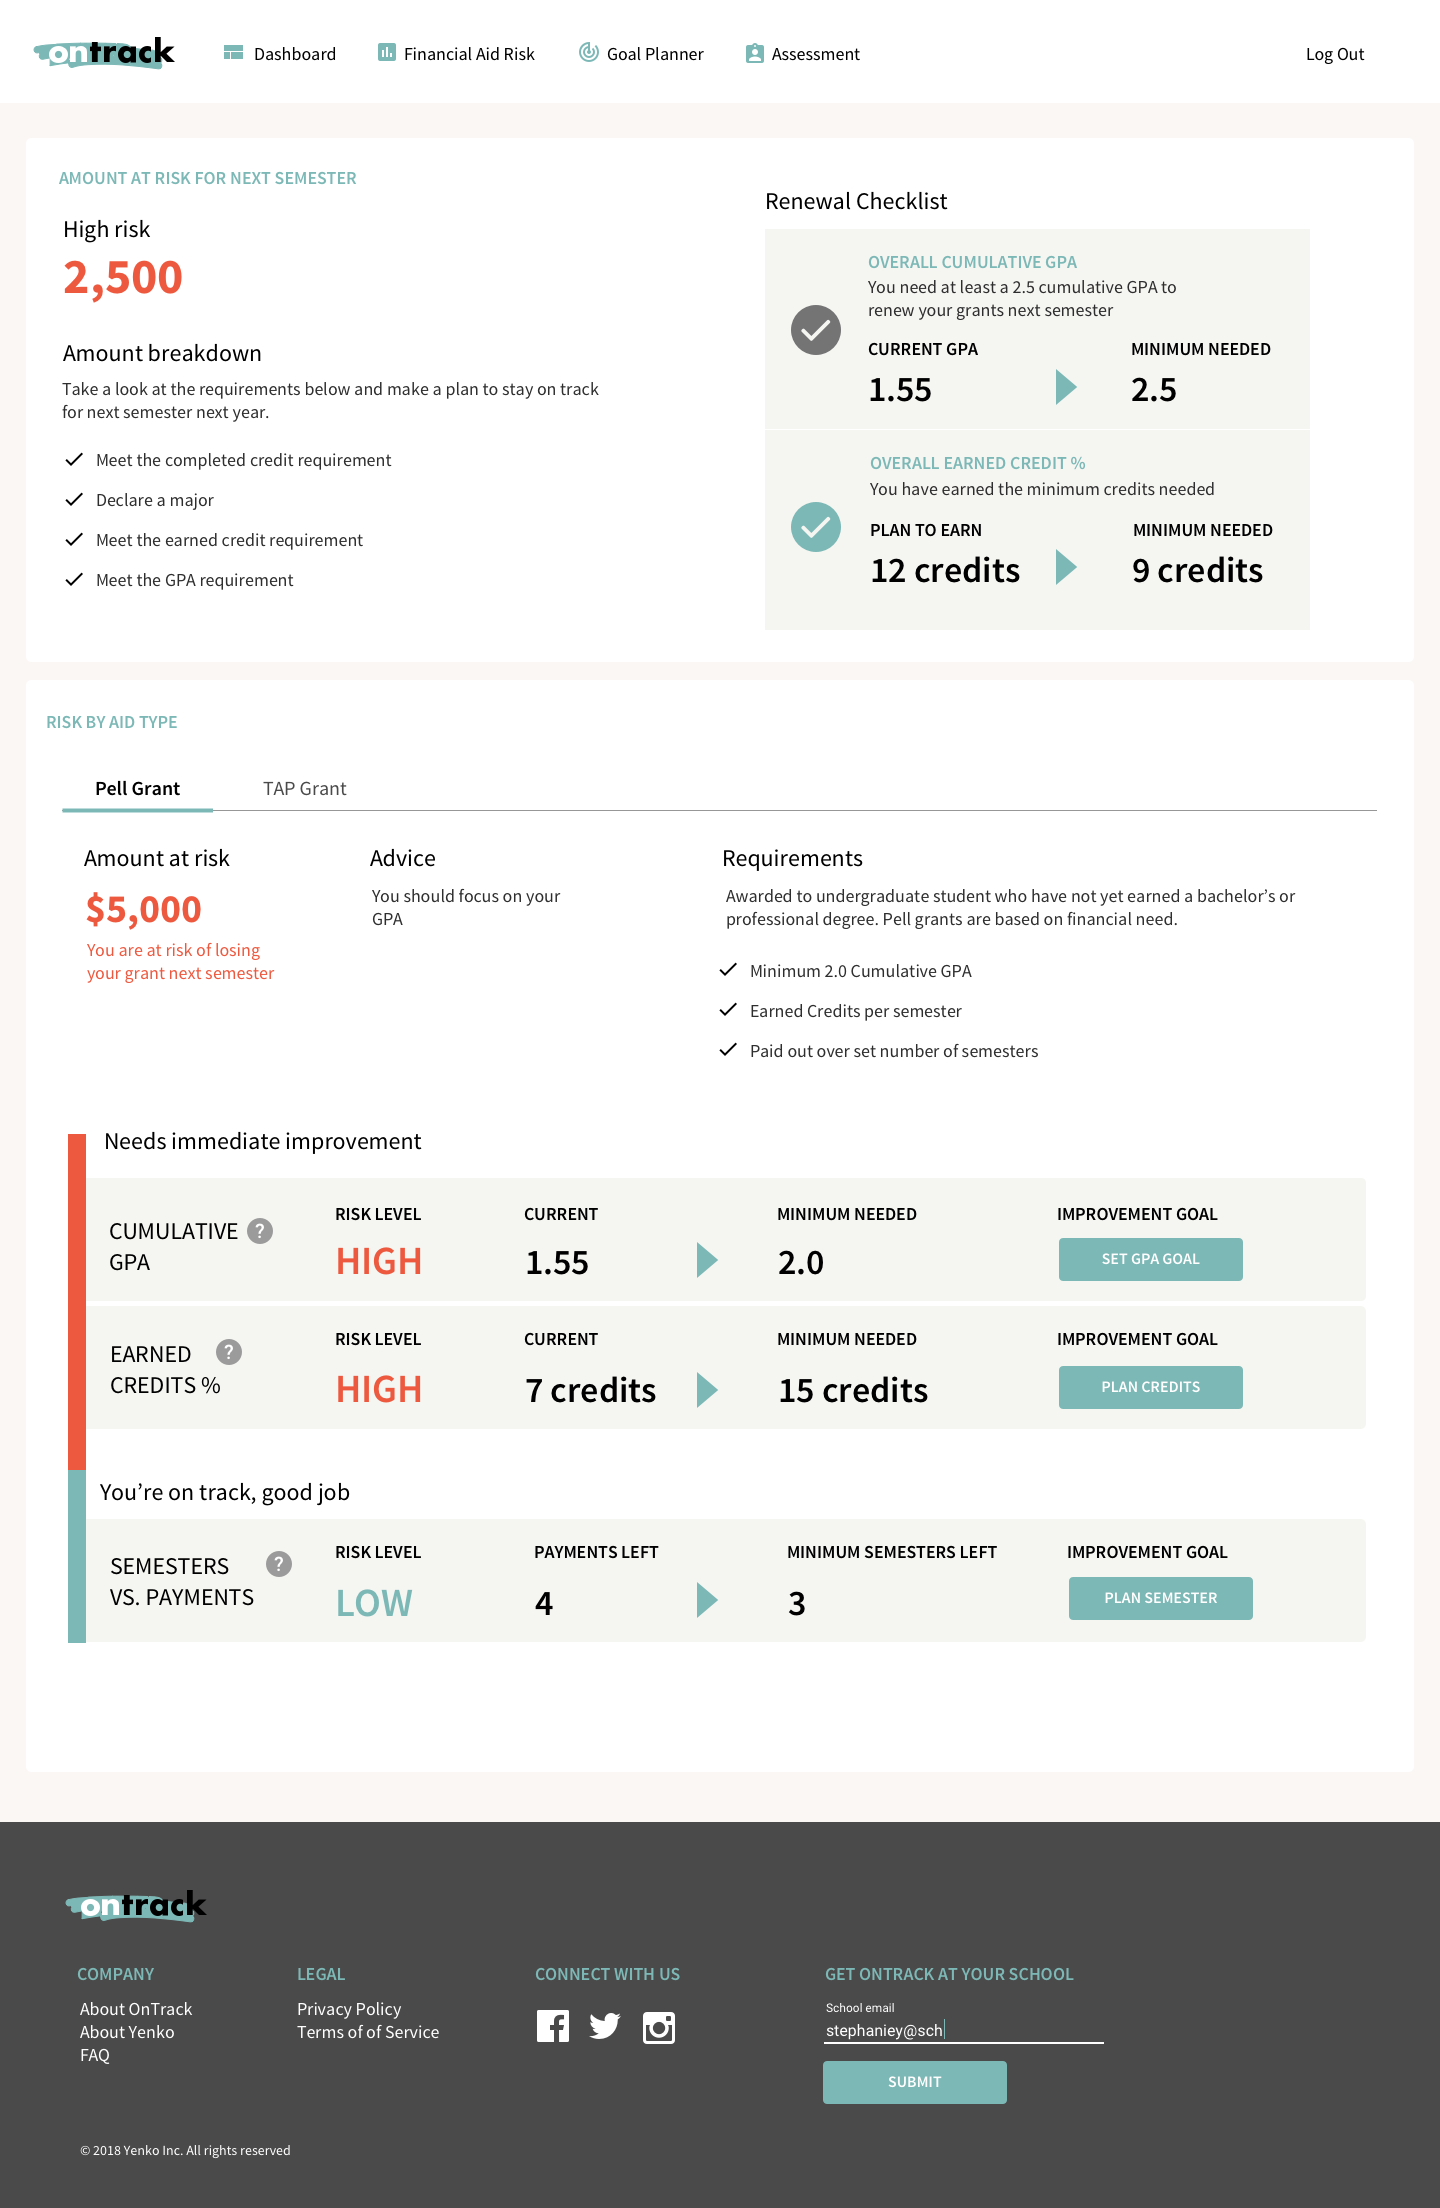 OnTrack Dashboard - The students can identify the areas that they need to focus on to keep their financial aid